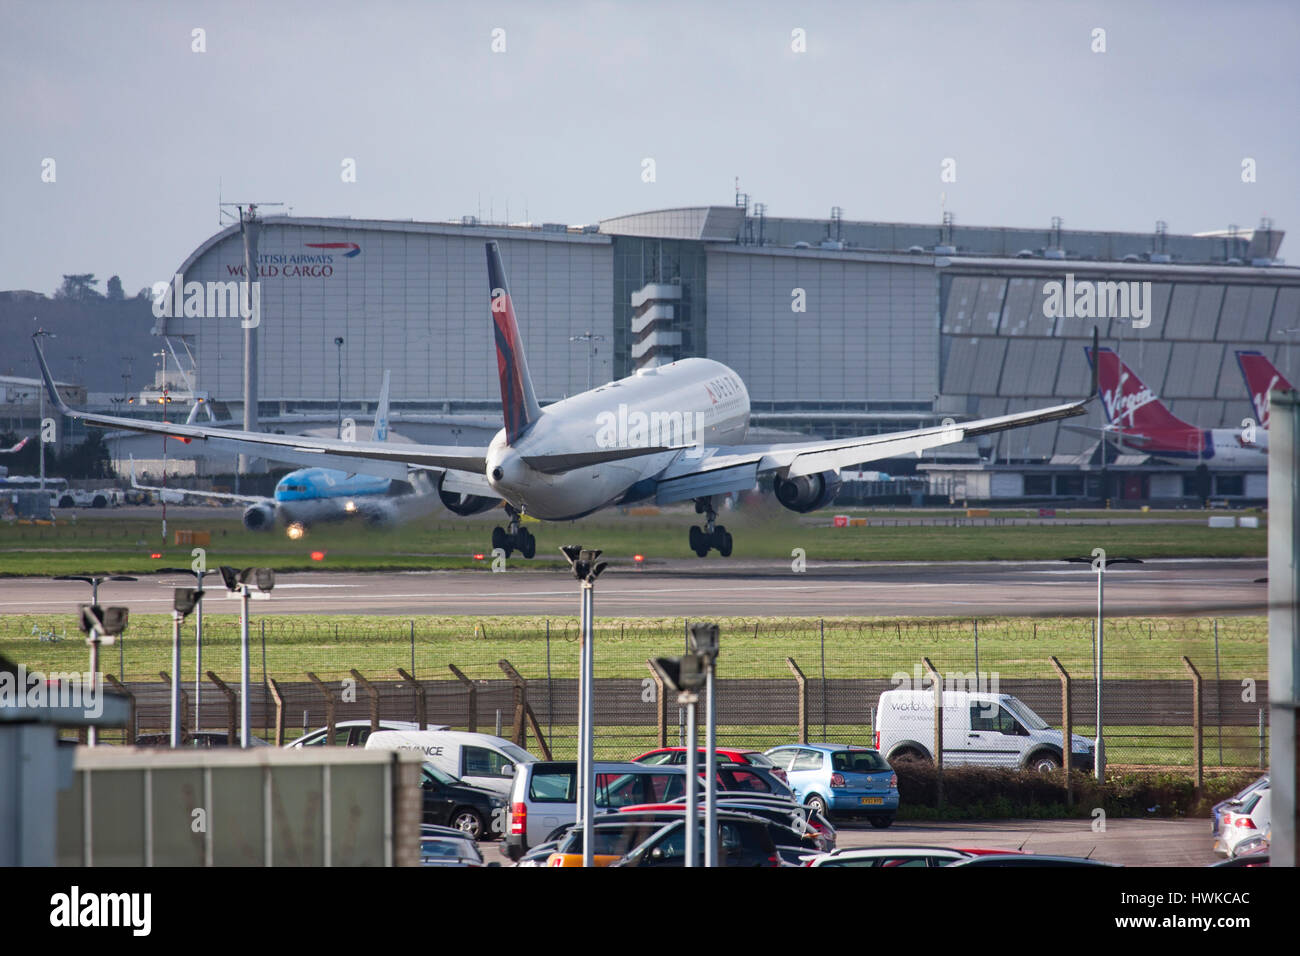 Delta Air Lines Boeing 767-332/ER landing at London Heathrow Airport, UK - Stock Image